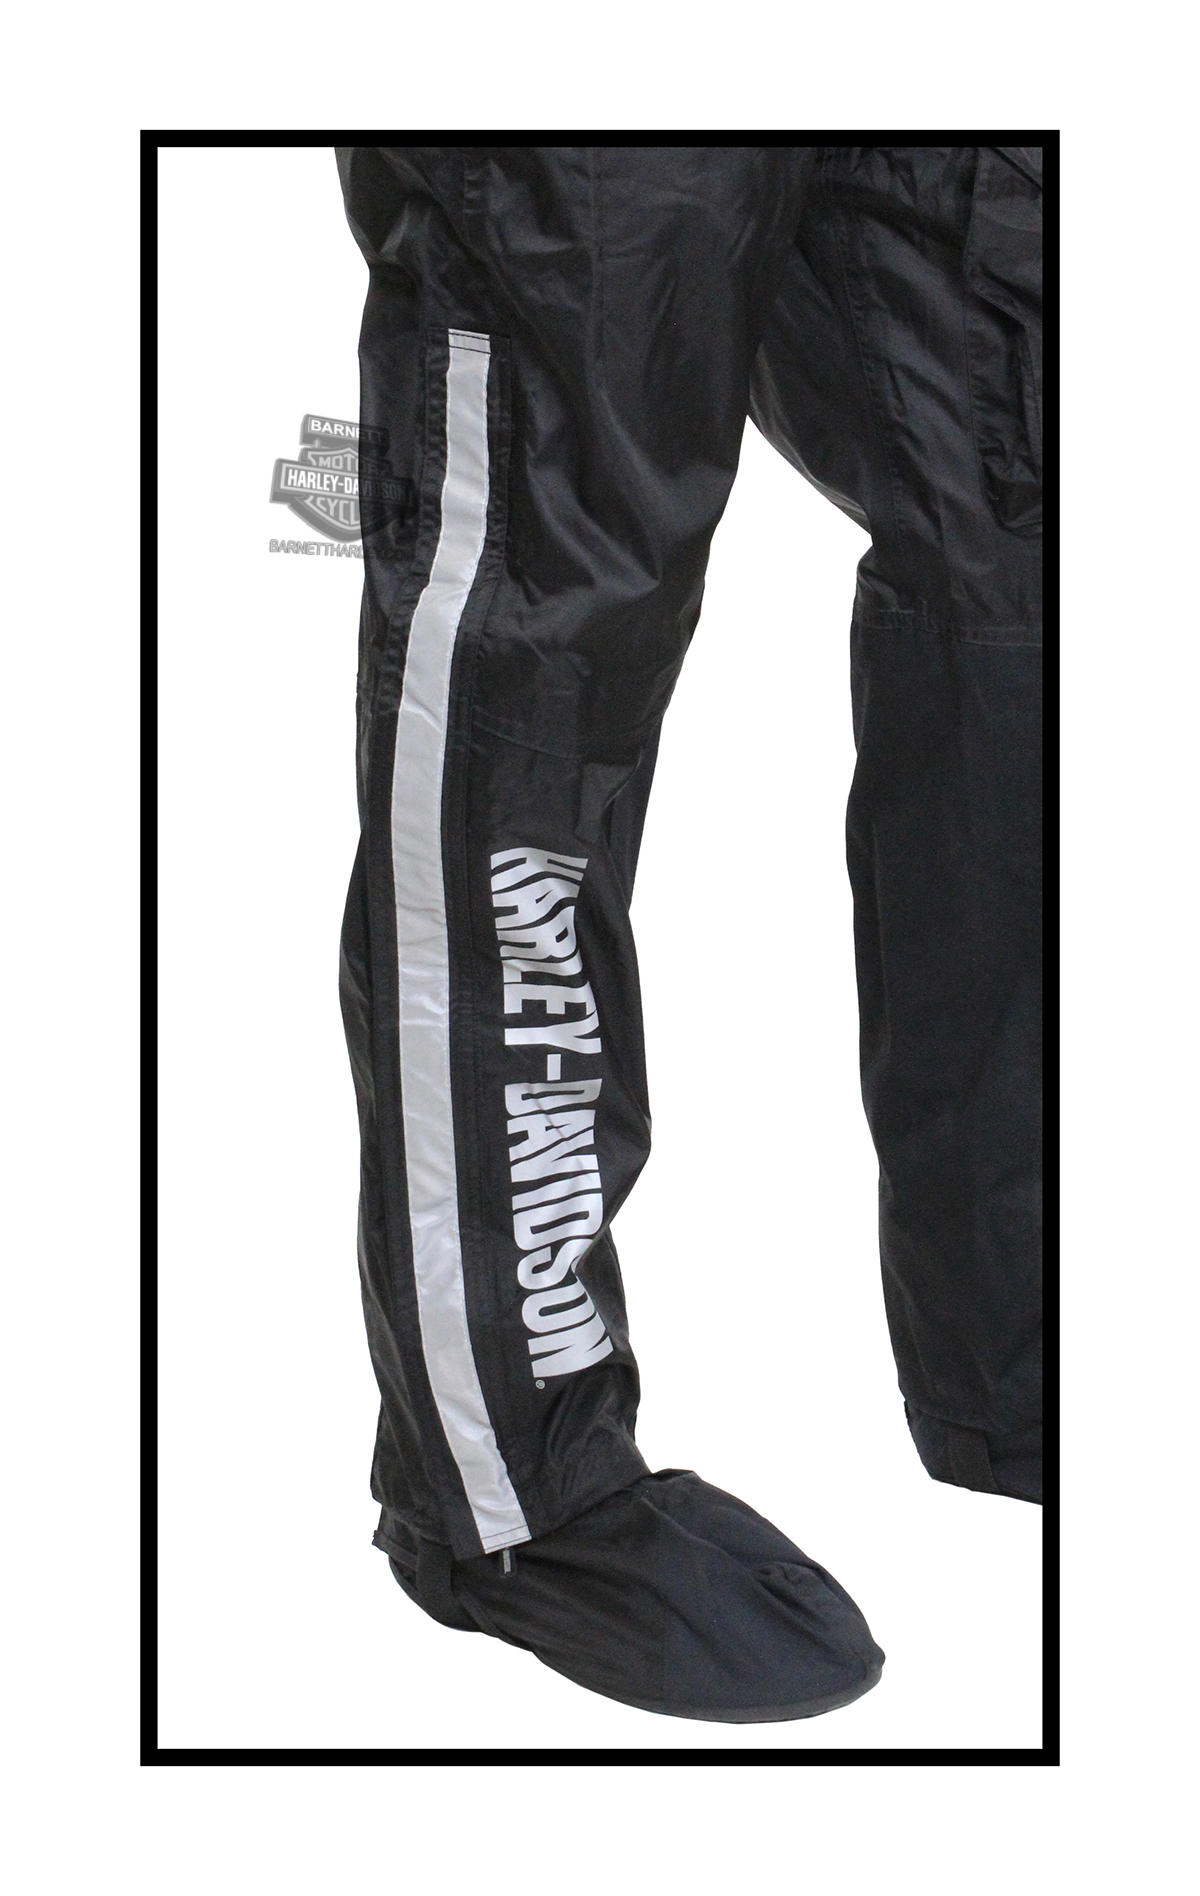 Harley Davidson 174 Mens Waterproof Rain Pant With Rain